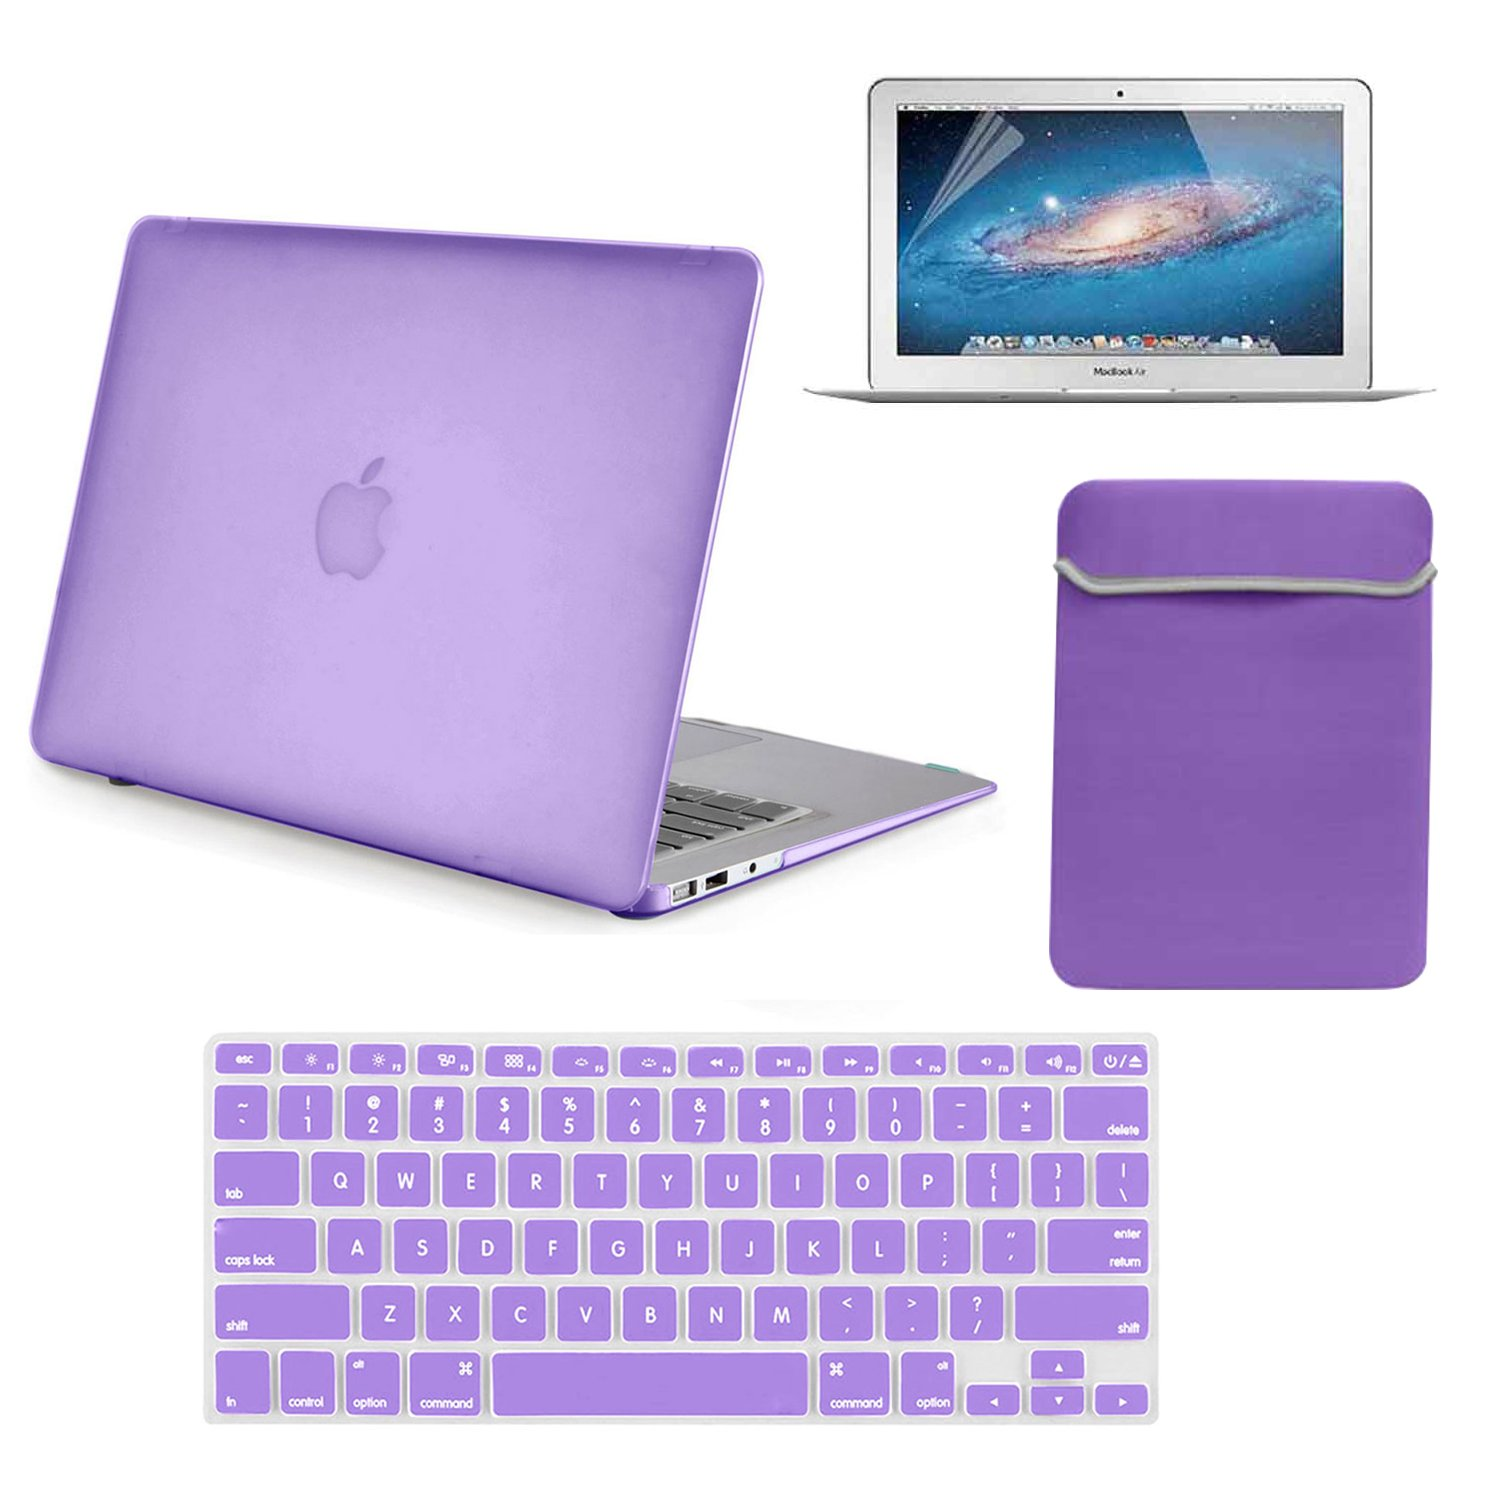 Lot 20 Rubberrized Hard Plastic Case Cover Sleeve Cover Keyboard Skin Screen Protector for MacBook Air 13'' A1369/A1466 - Purple